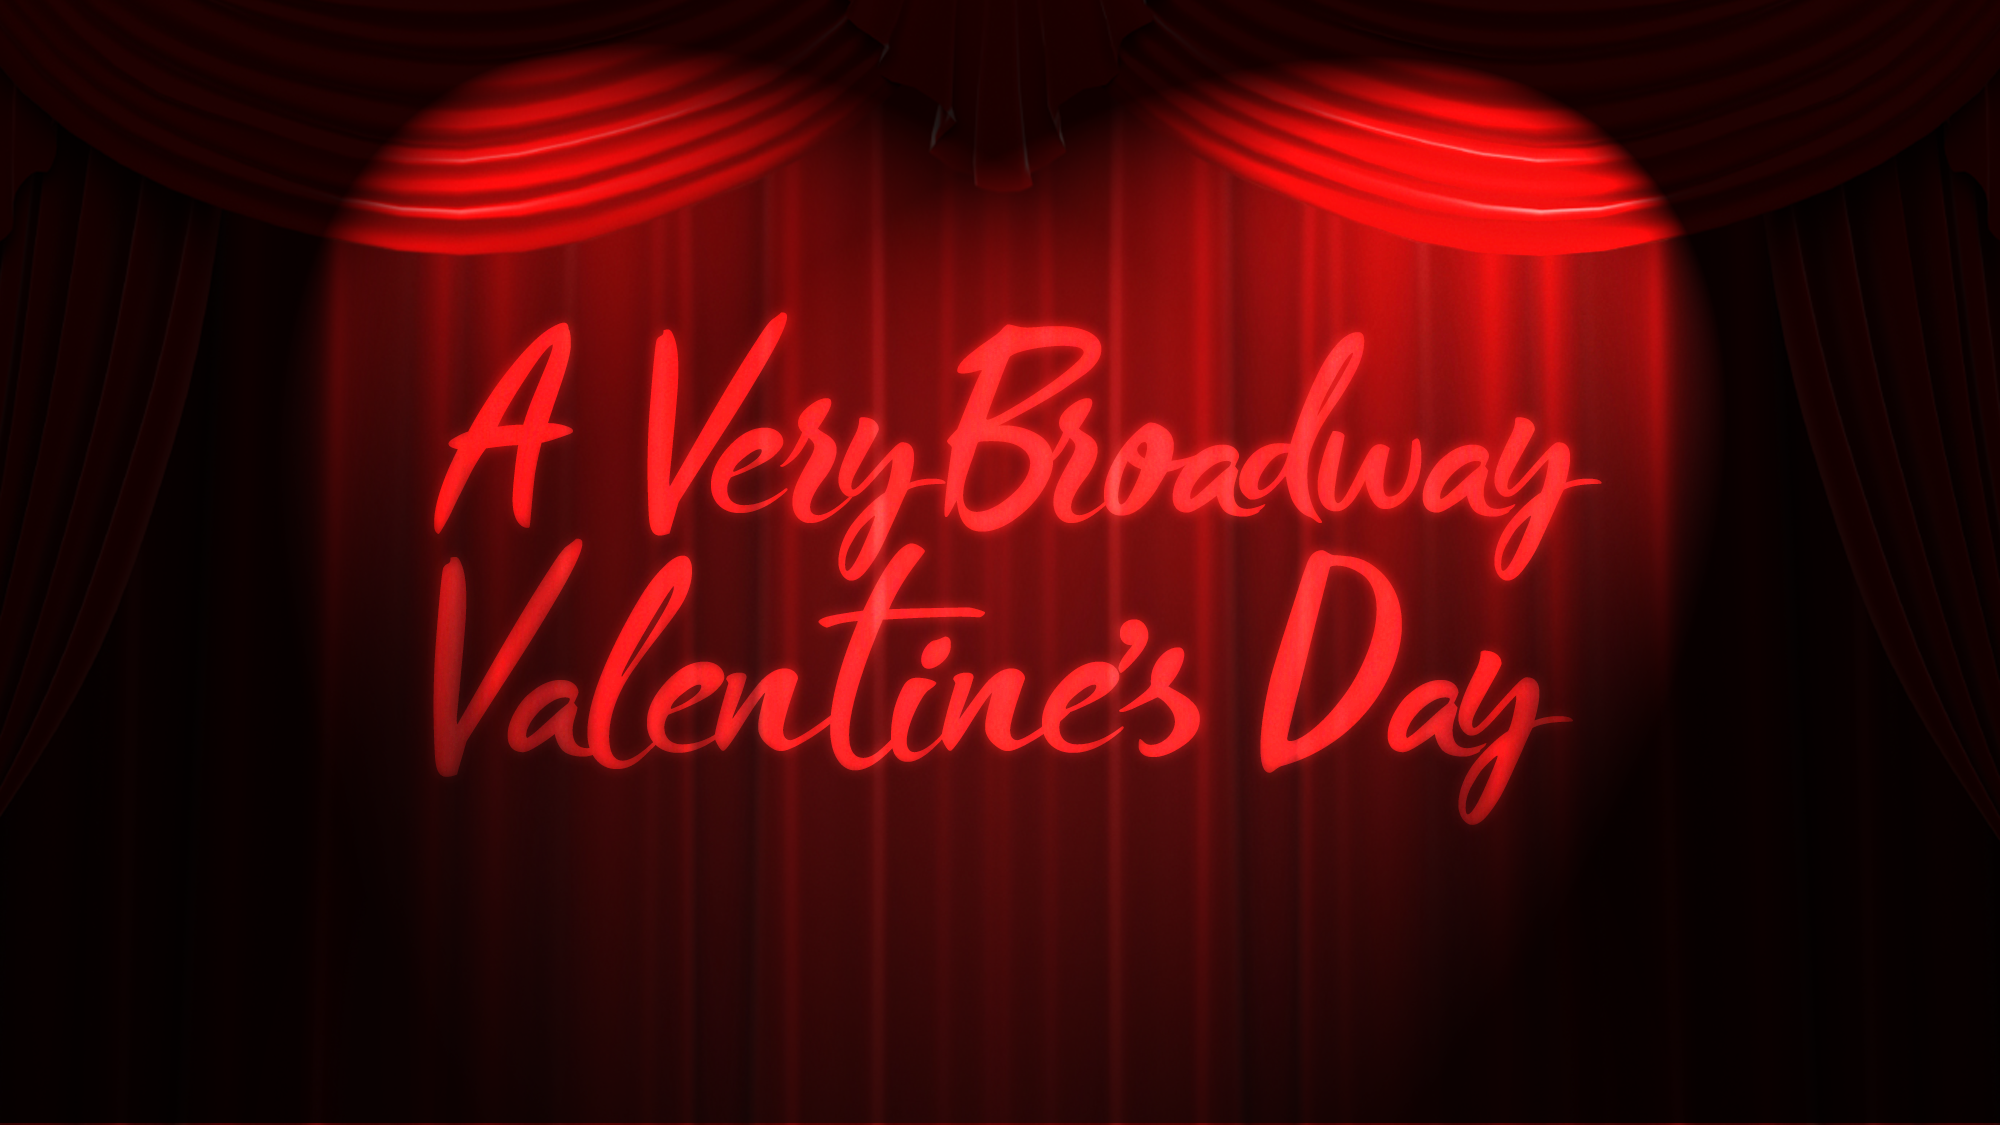 A Very Broadway Valentine's Day